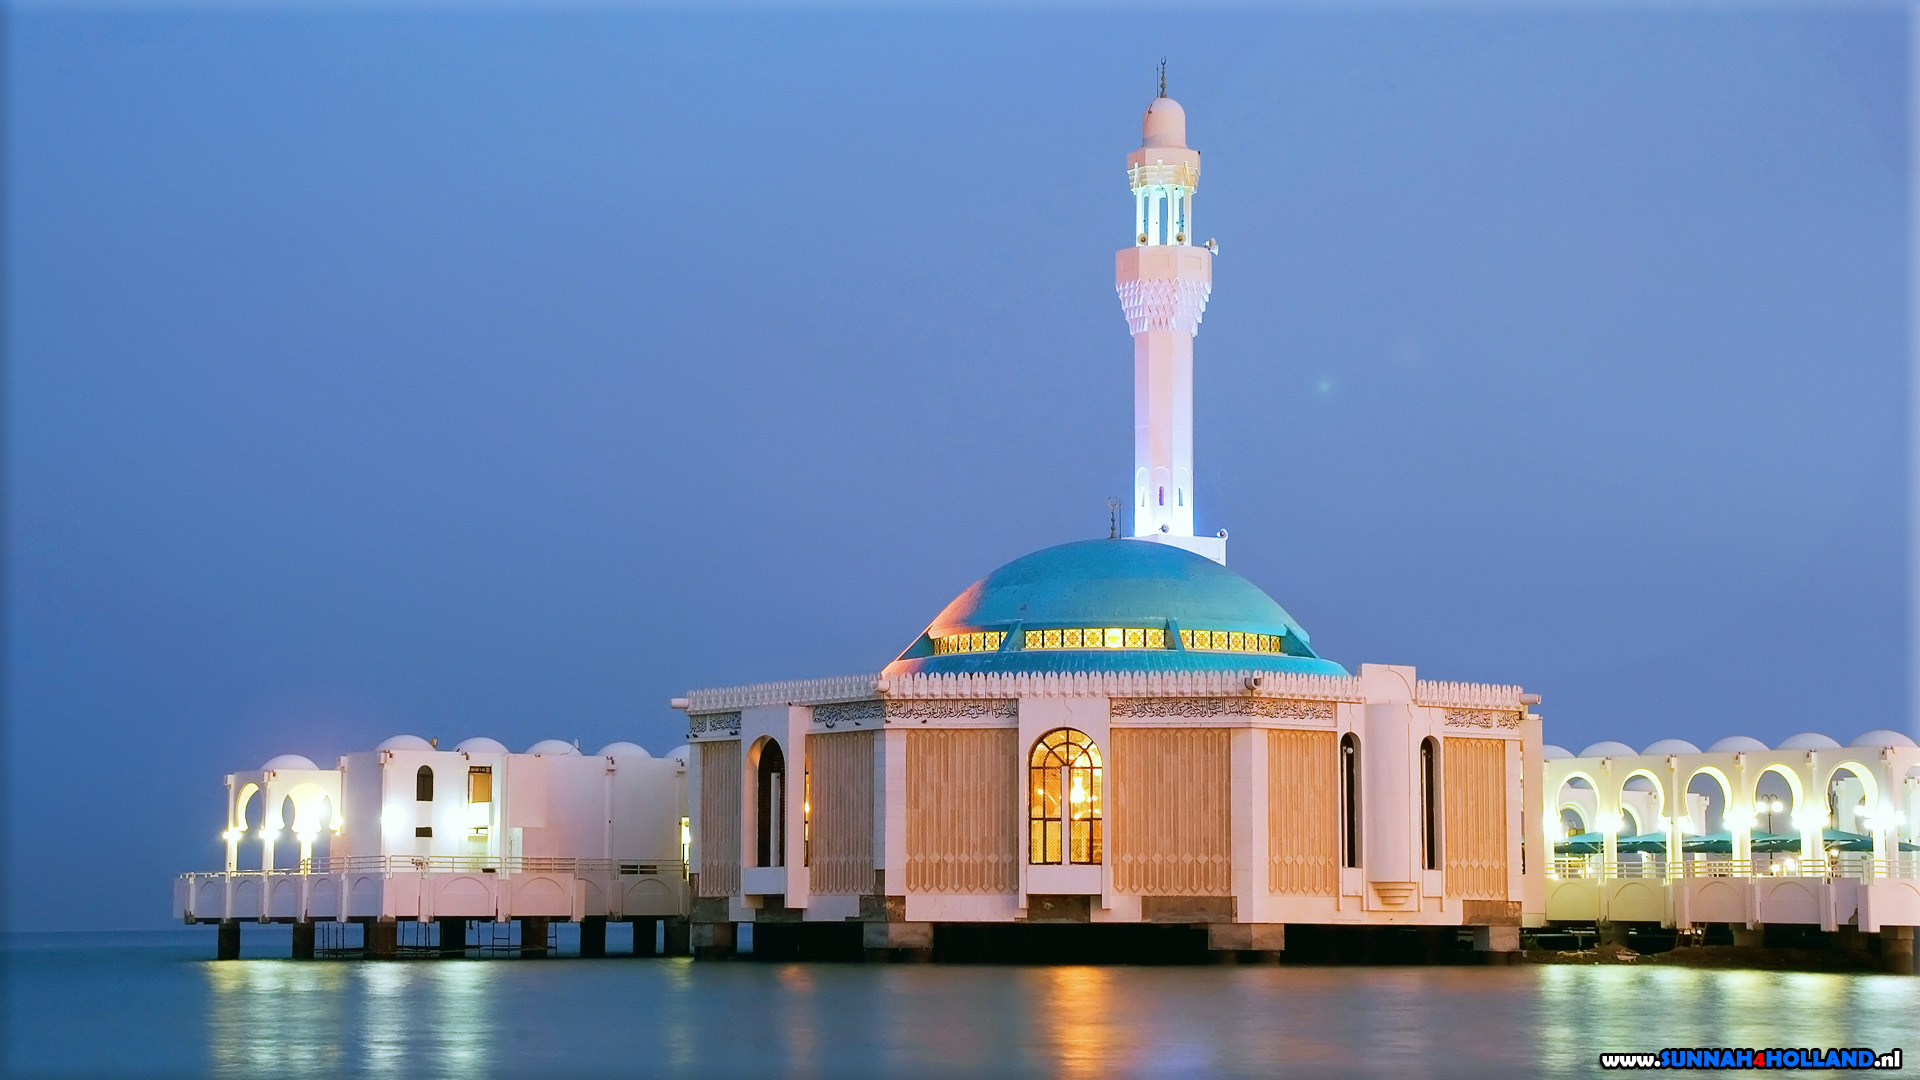 Very beautiful mosque